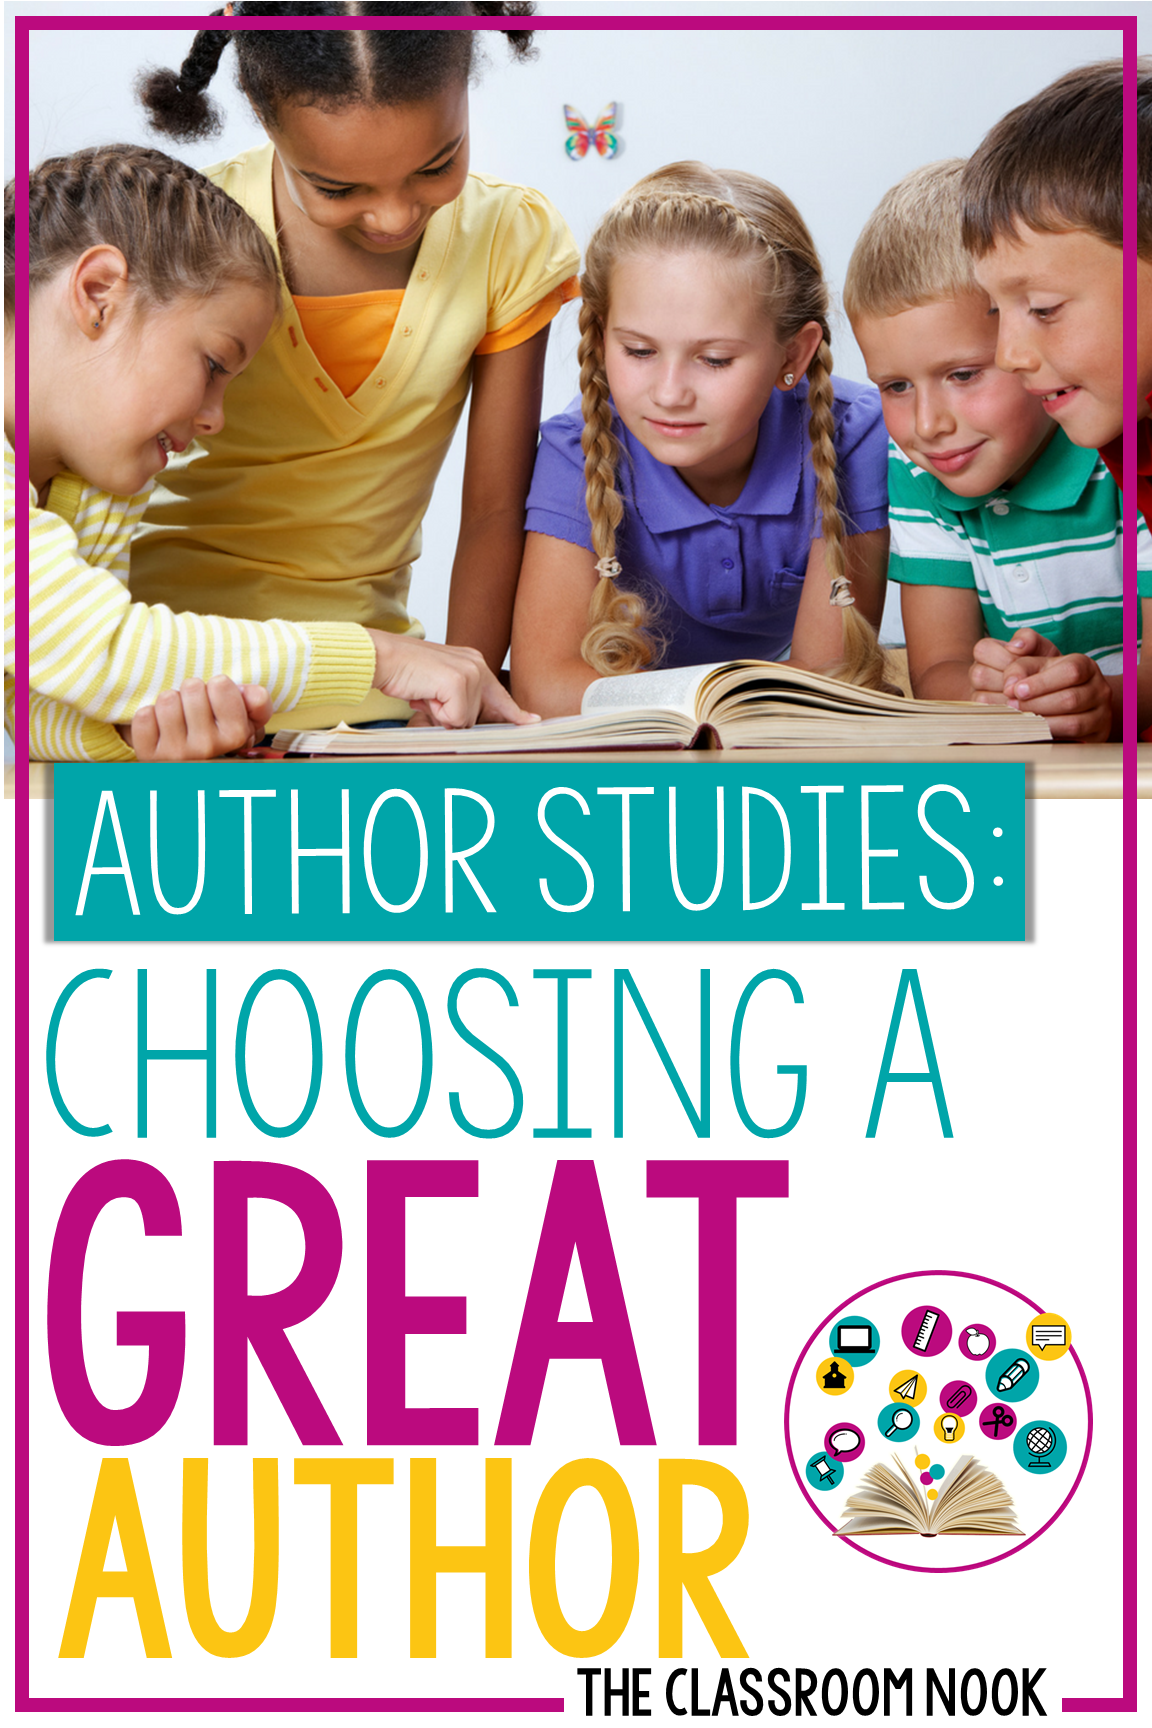 Author Study Series:  Choosing a Great Author